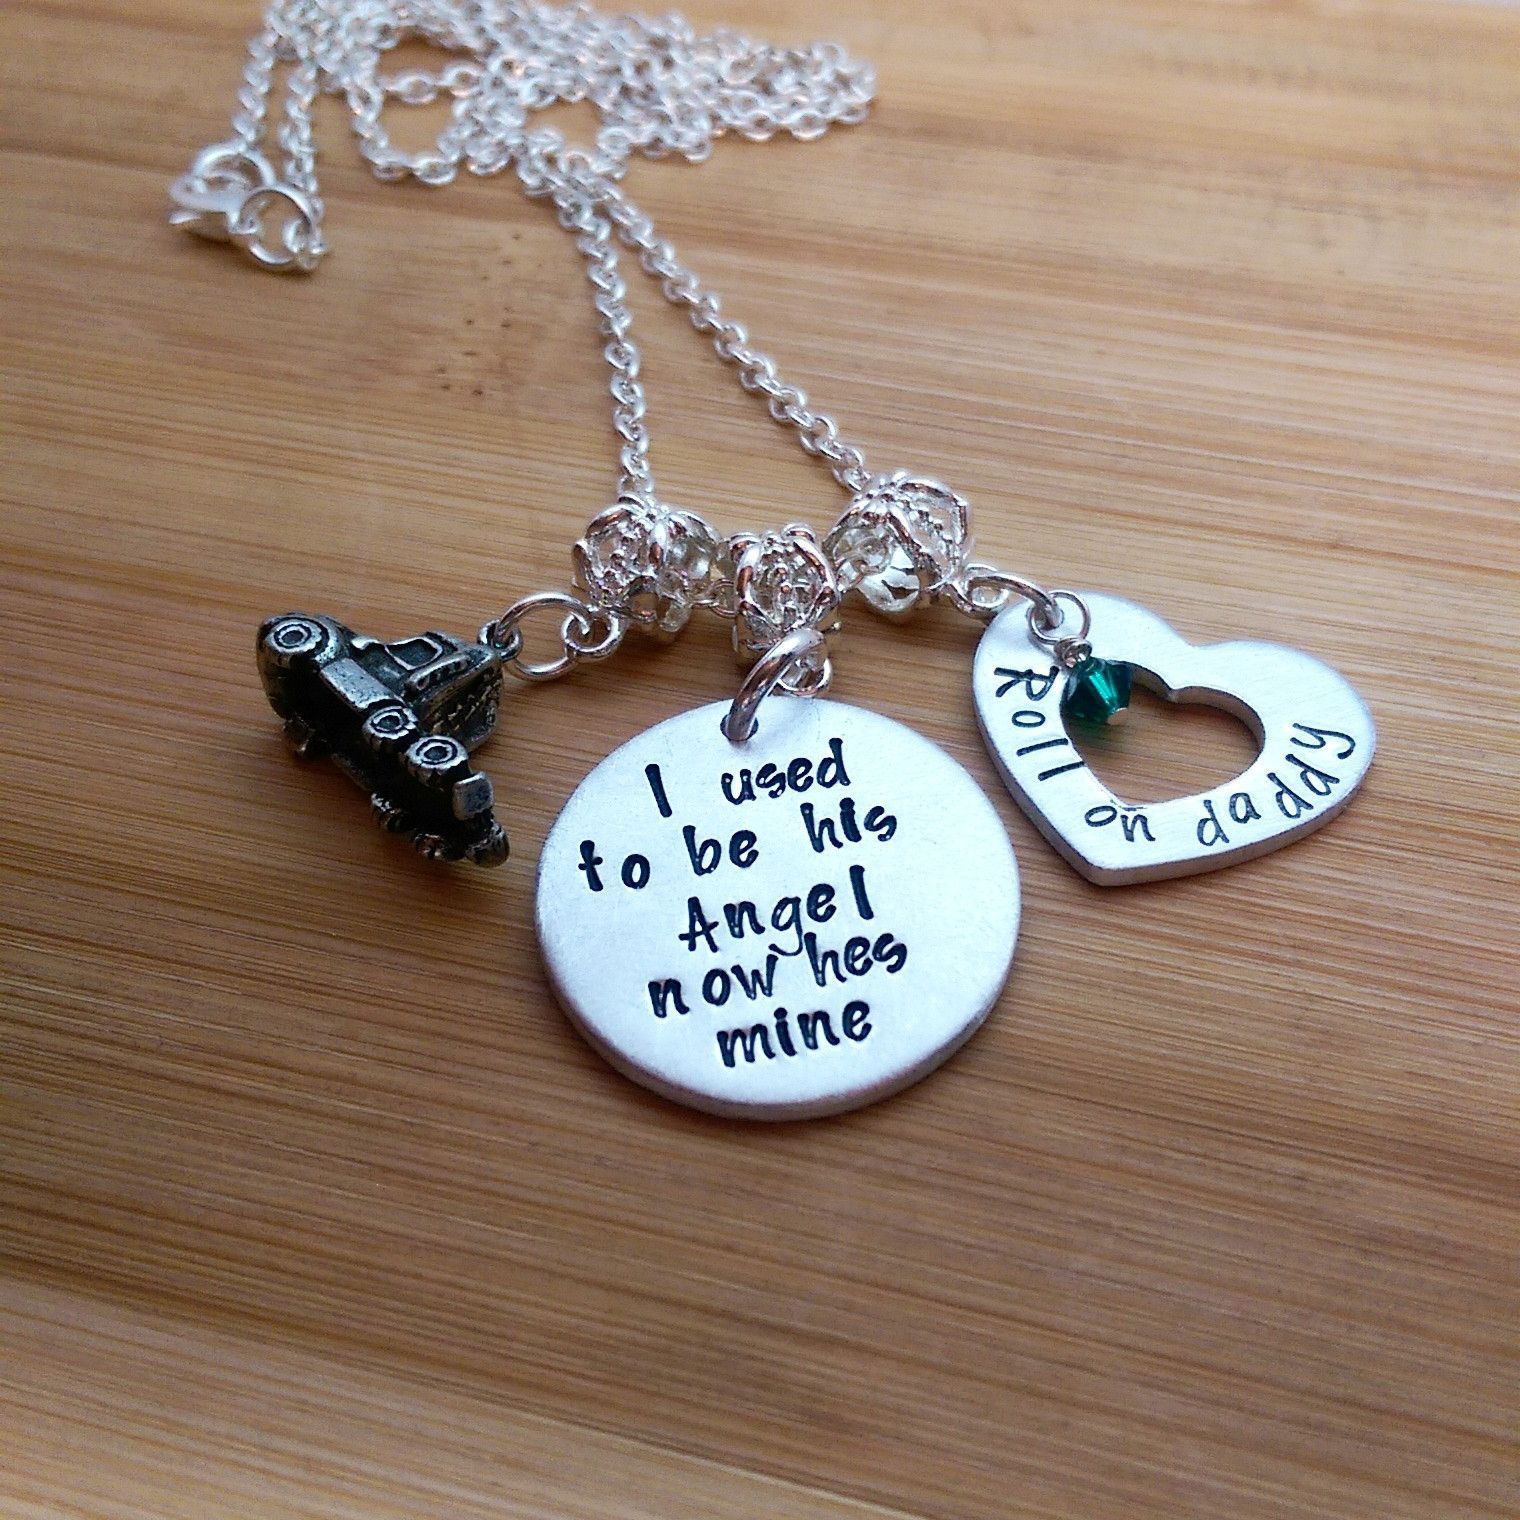 I Used To Be His Angel Now He's Mine - Roll On Daddy - Memorial Necklace